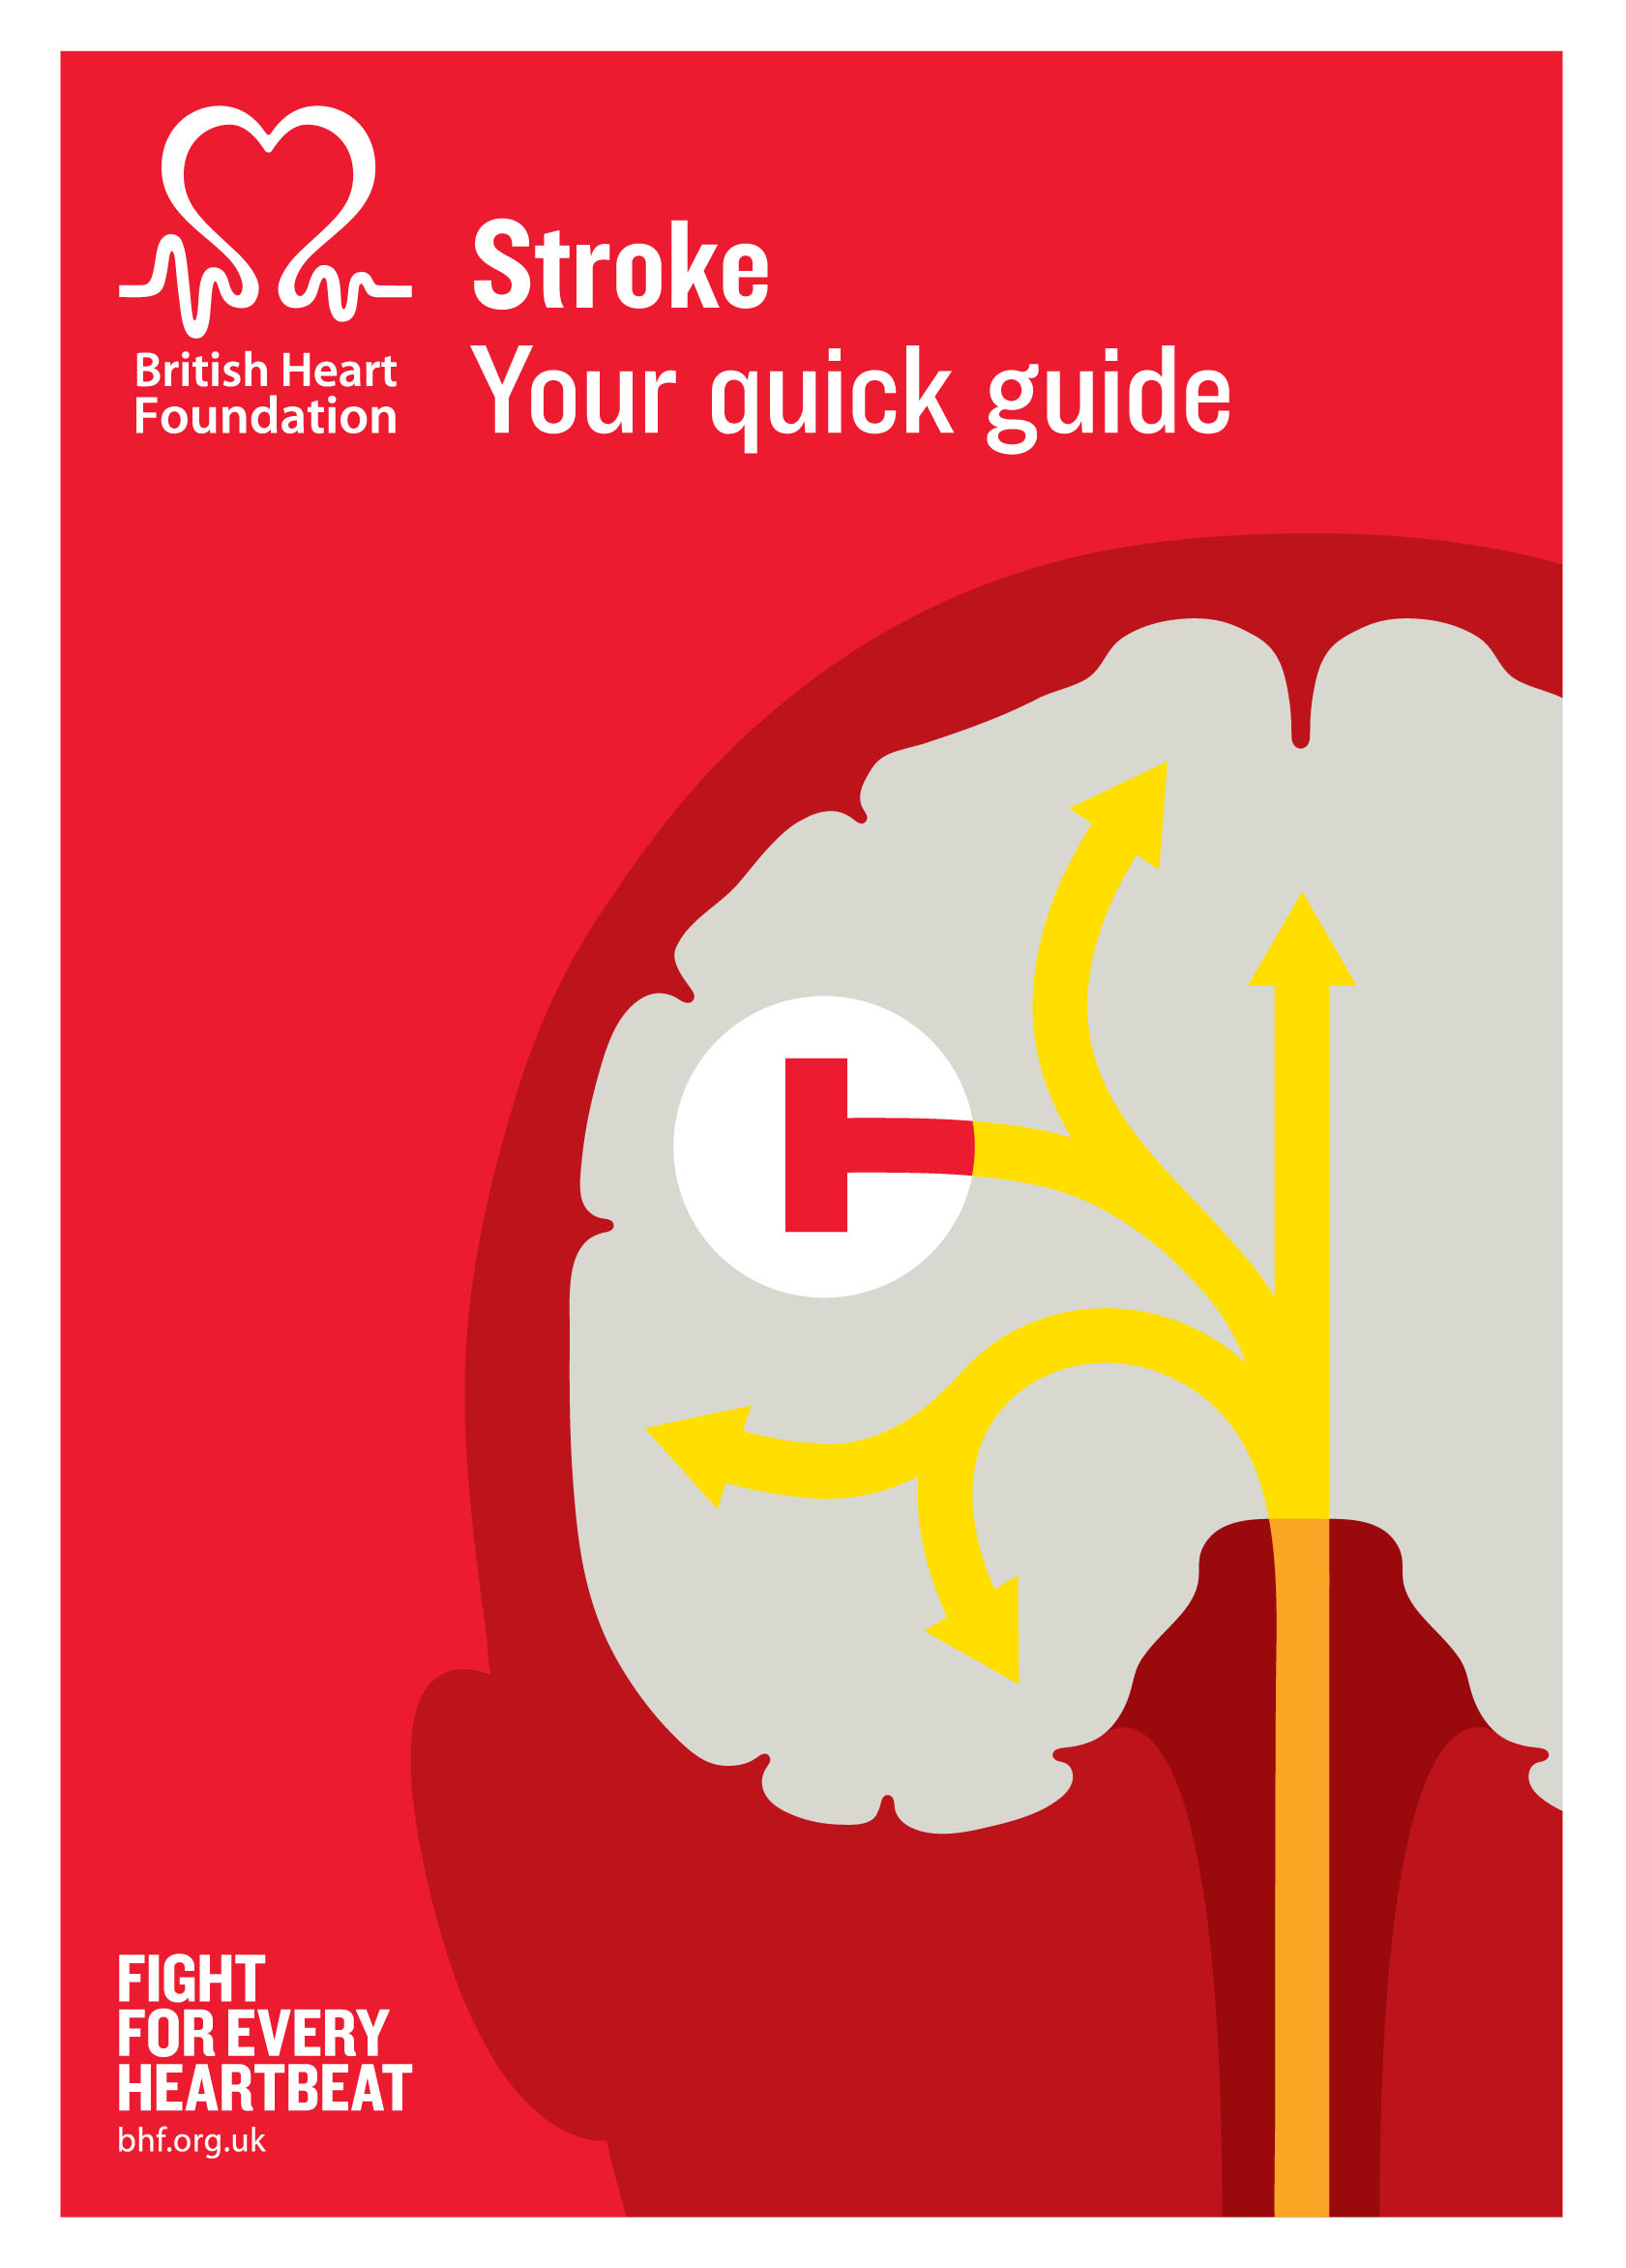 Stroke - your quick guide